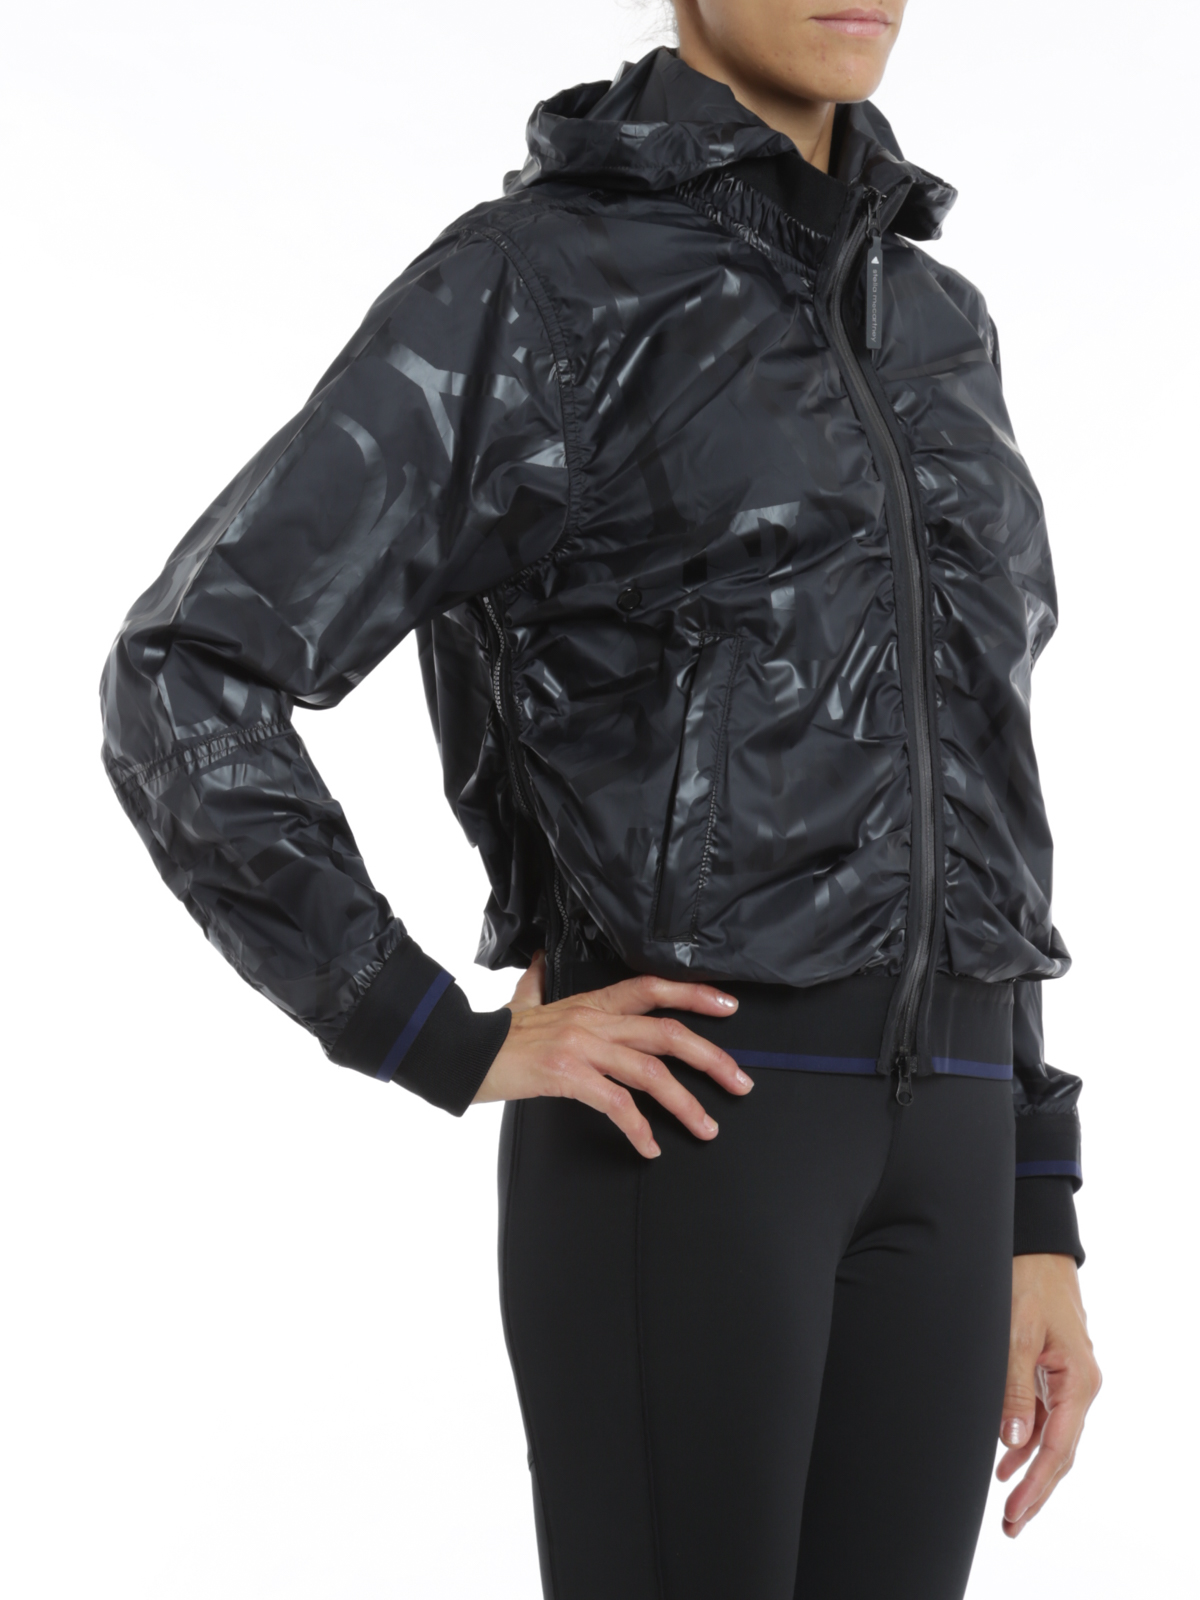 iKRIX Adidas by Stella McCartney: Sweatshirts & Sweaters Running performance jacket